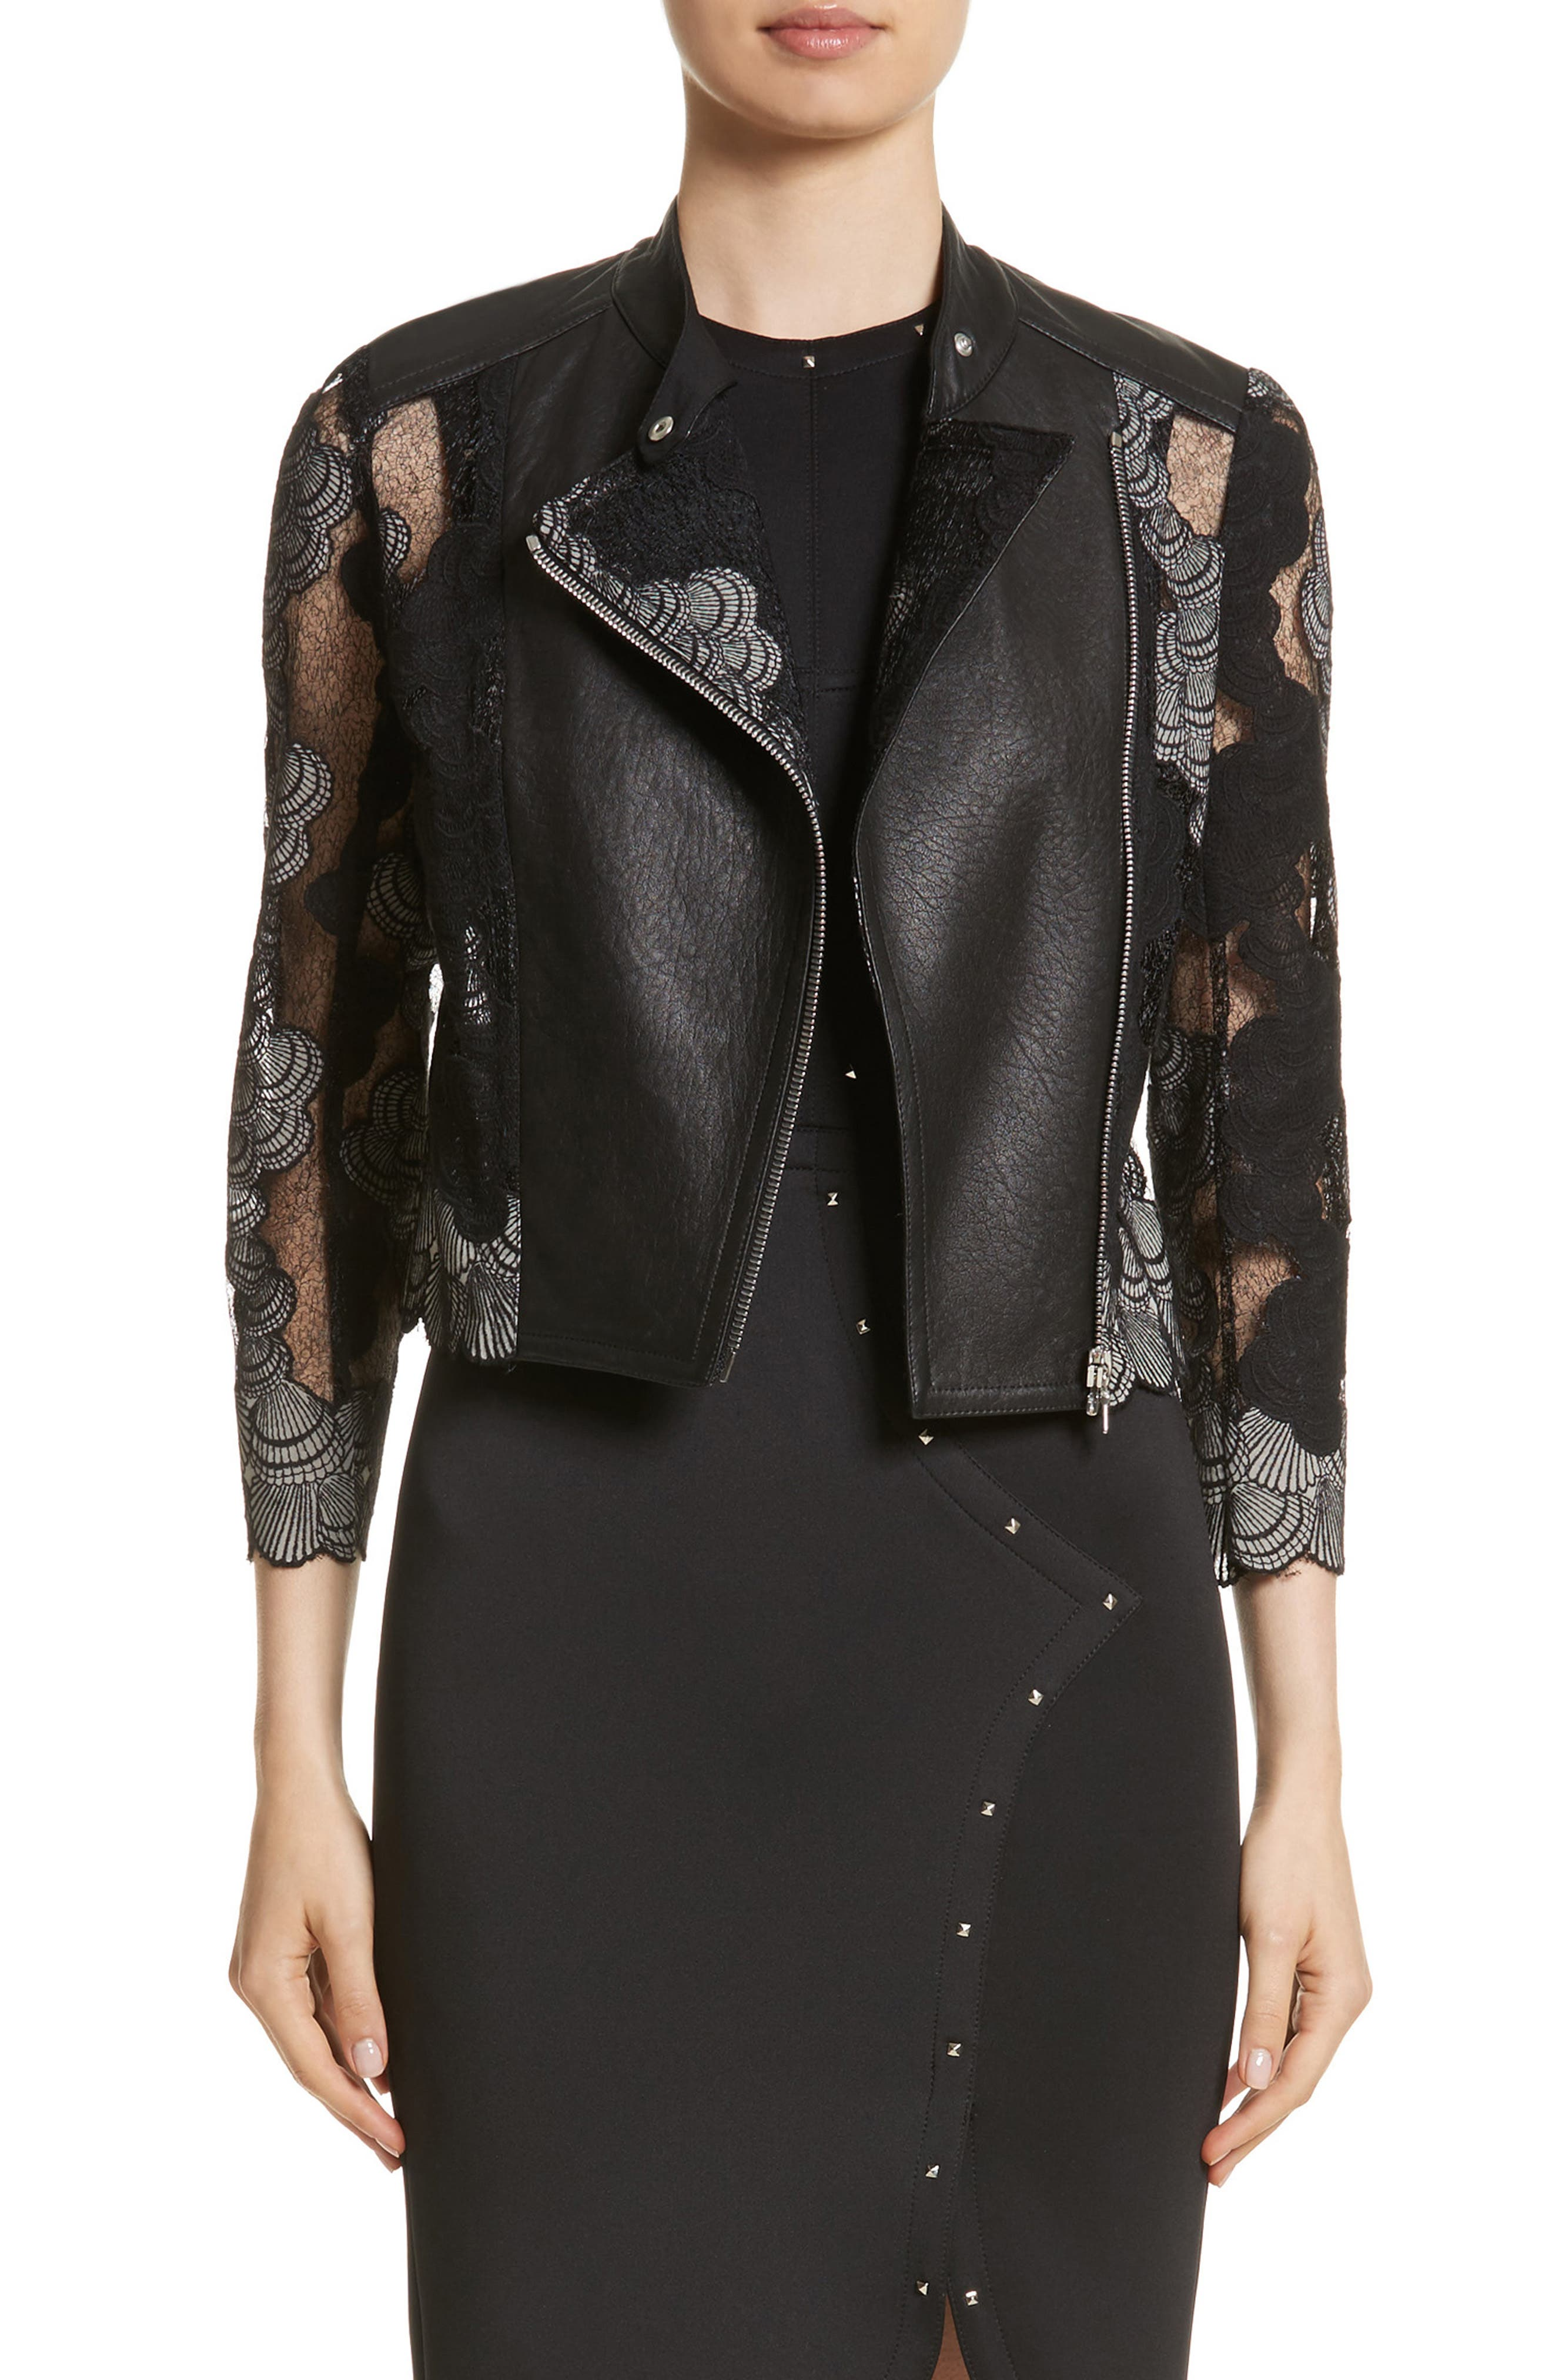 Yigal Azrouël Seashell Lace Moto Jacket